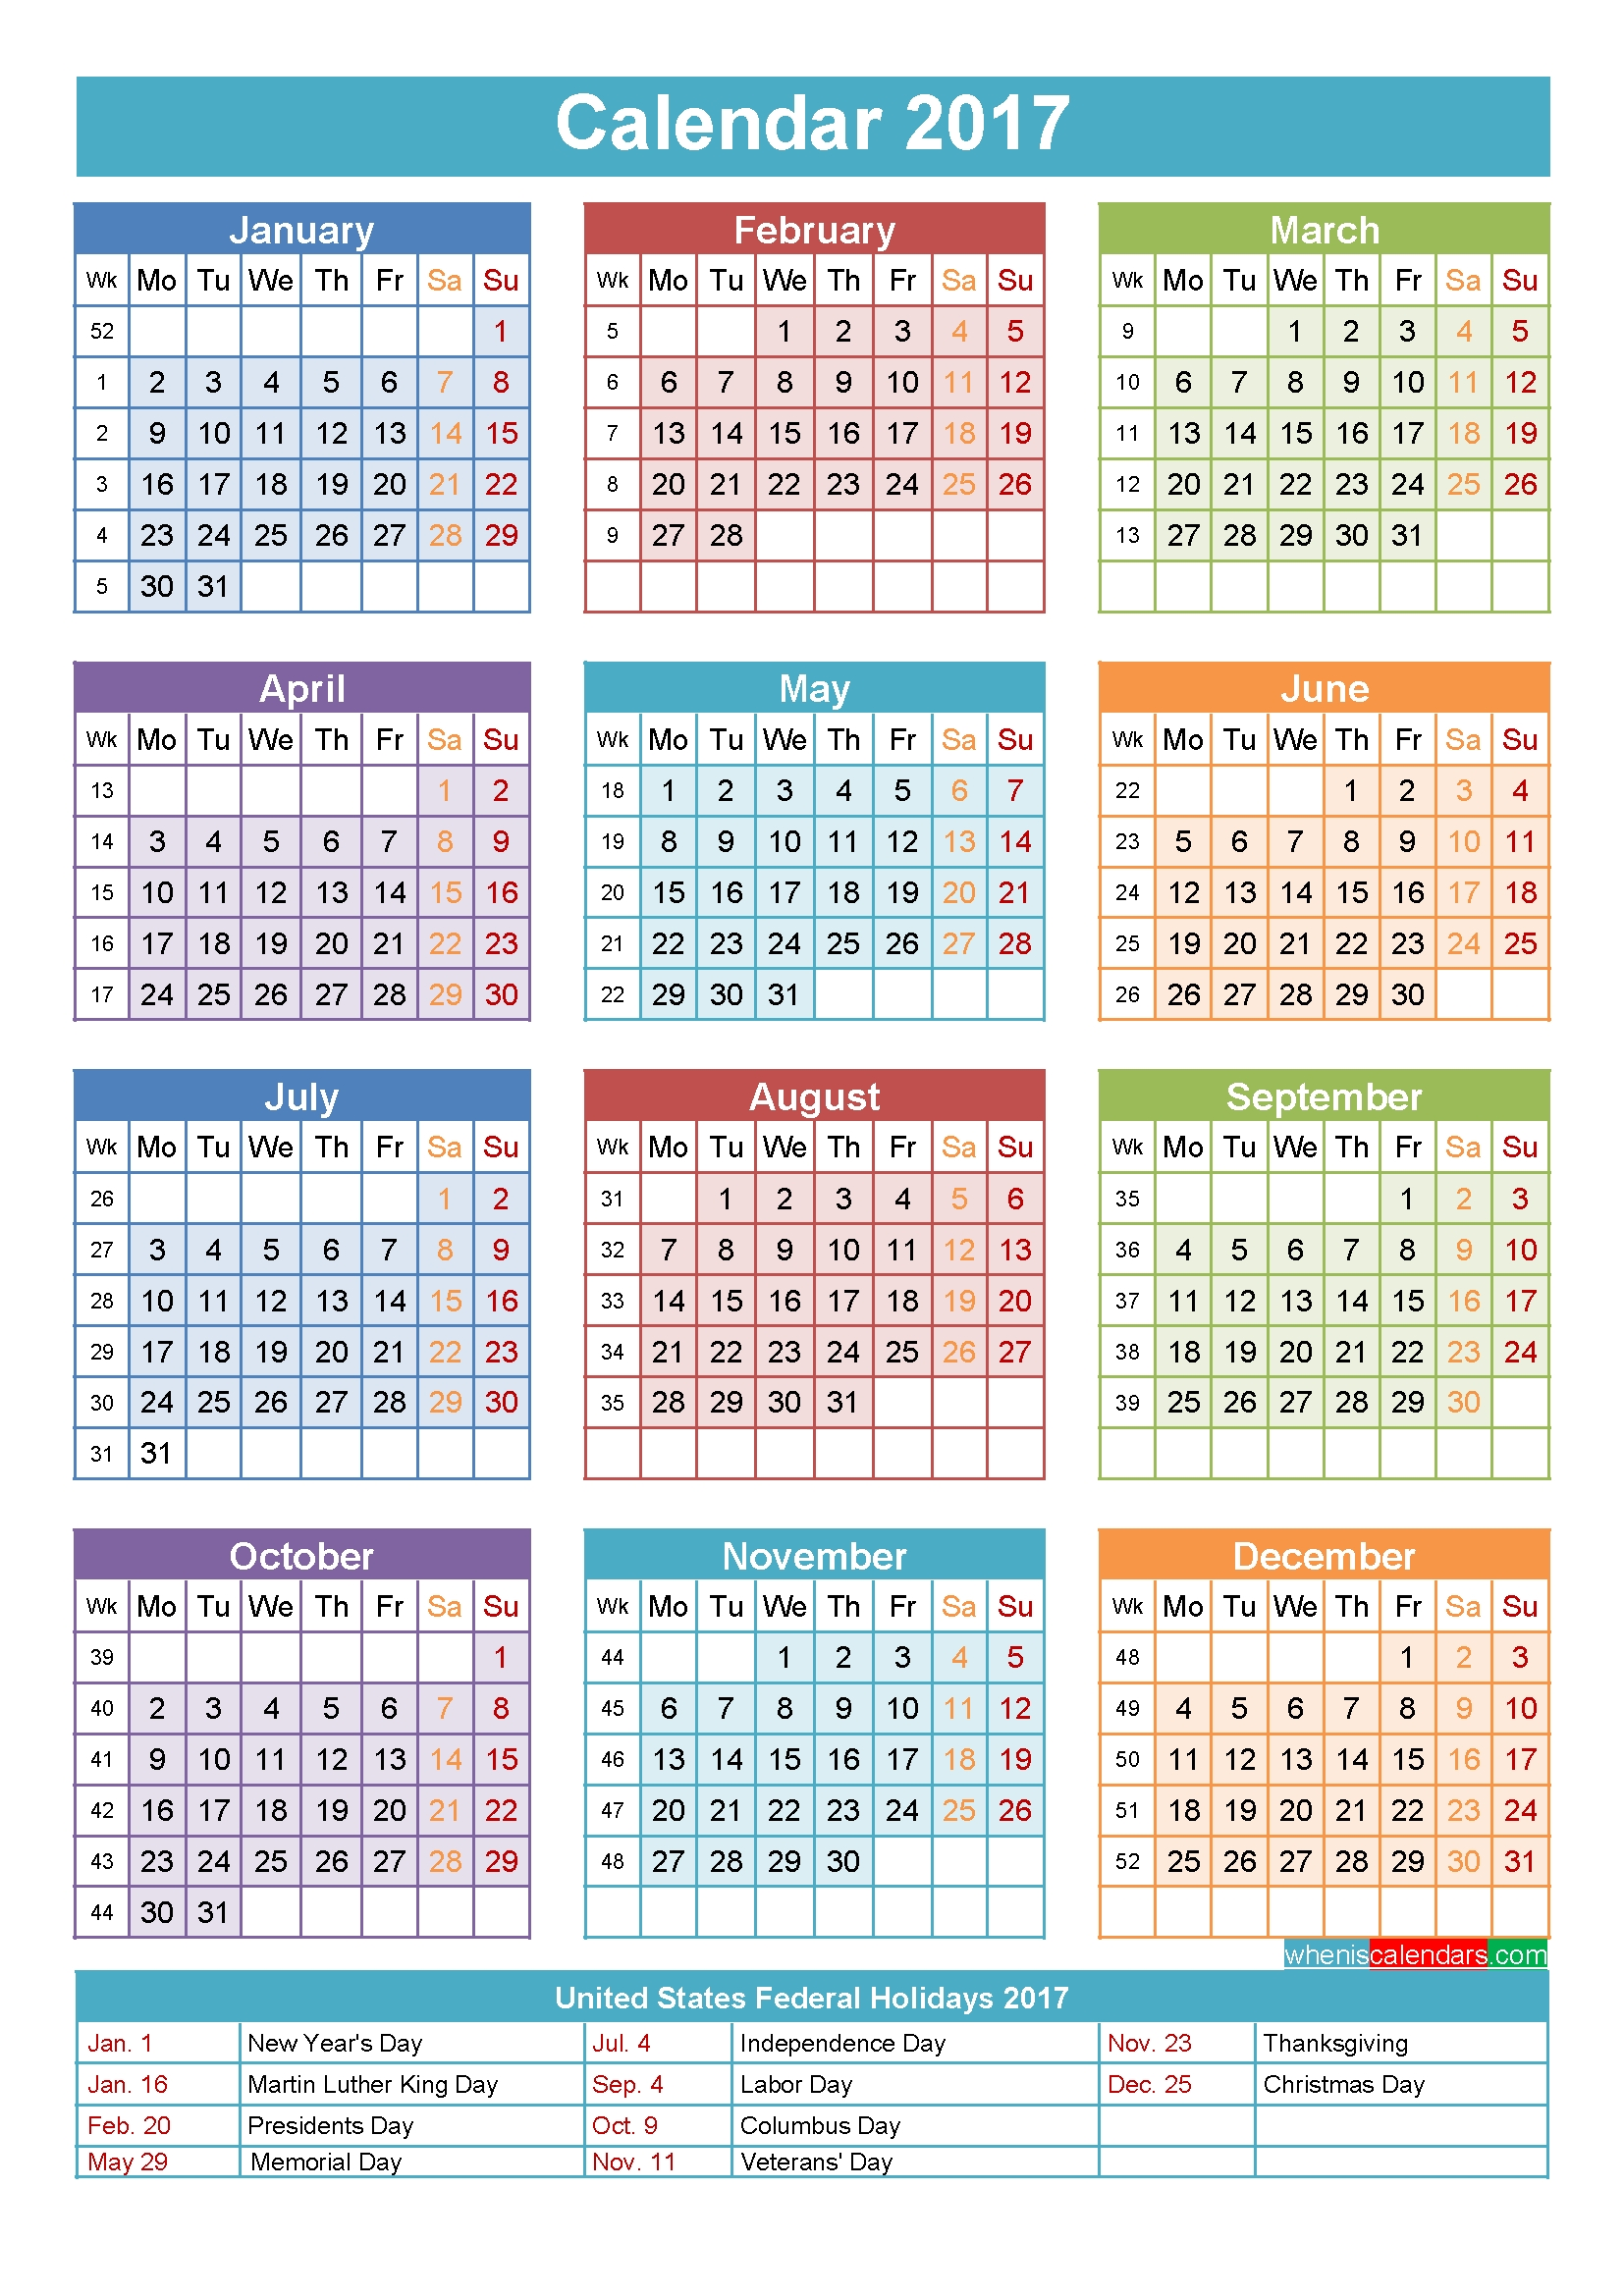 Download 2019 Calendar Printable With Holidays List | Free Calendar within July August September October November December In Month How Much Holiday